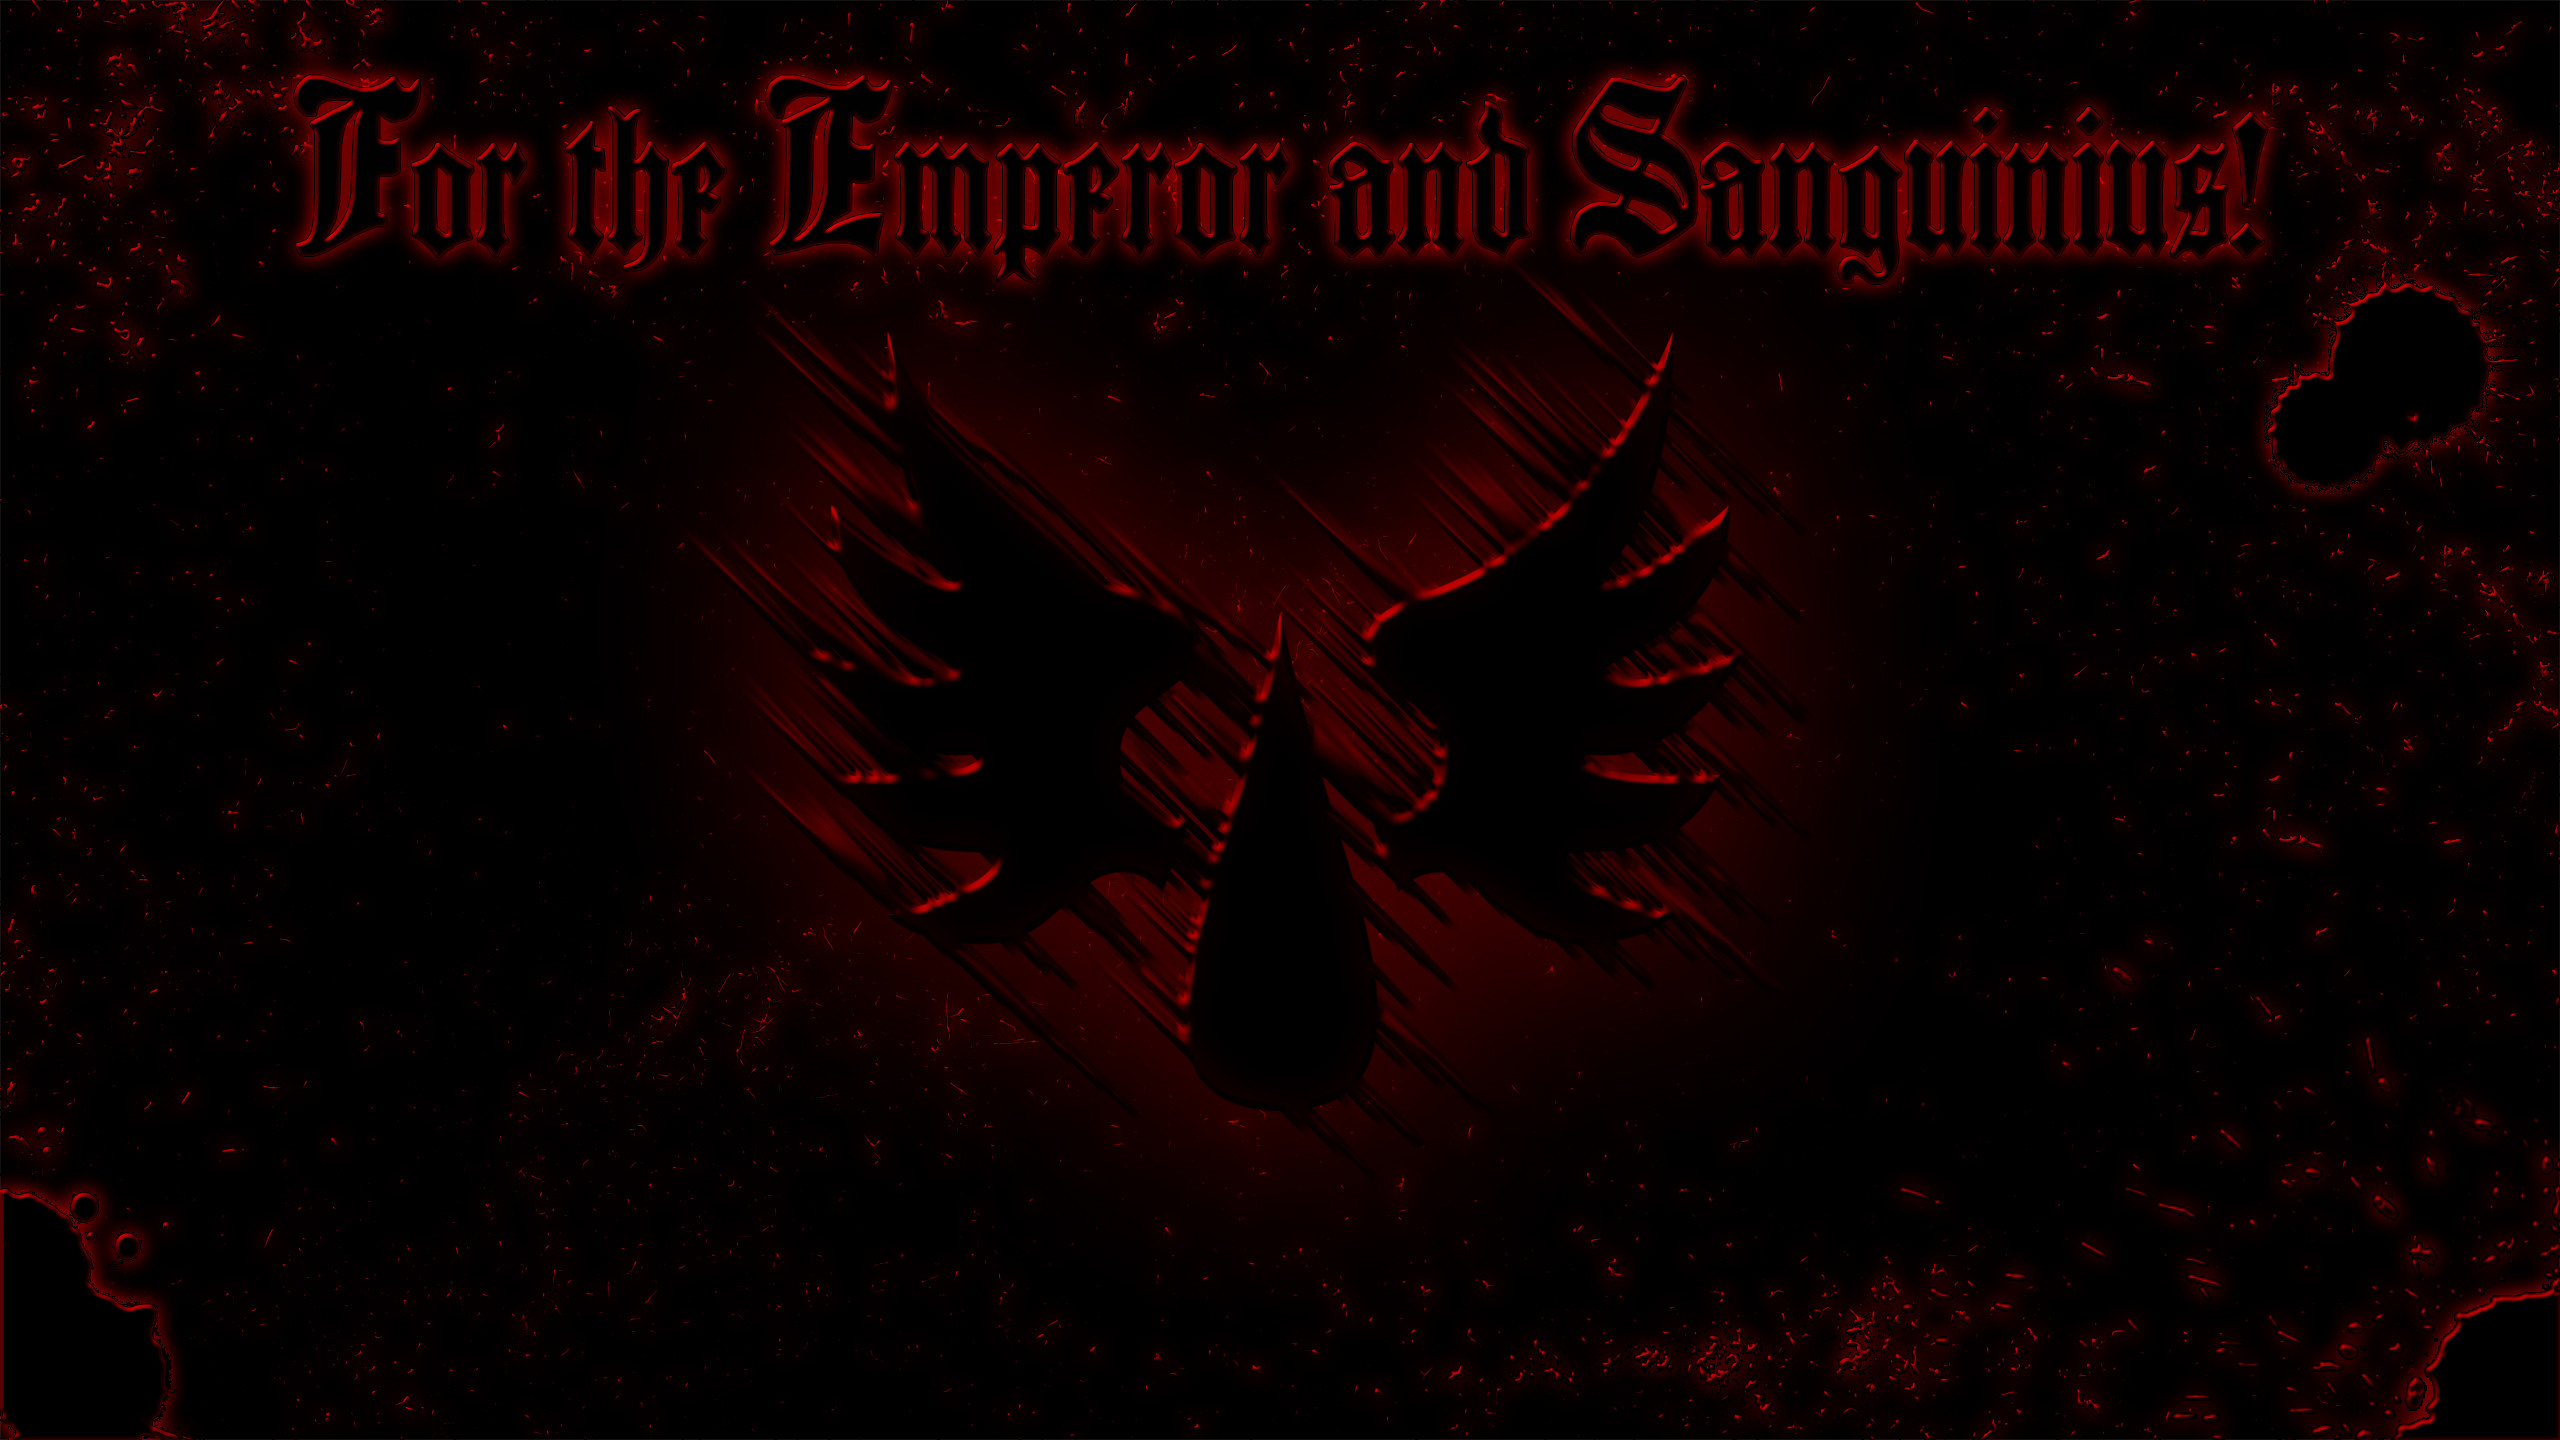 Blondes angels wings birds battle blood demons weapons feathers 1920x1080  wallpaper